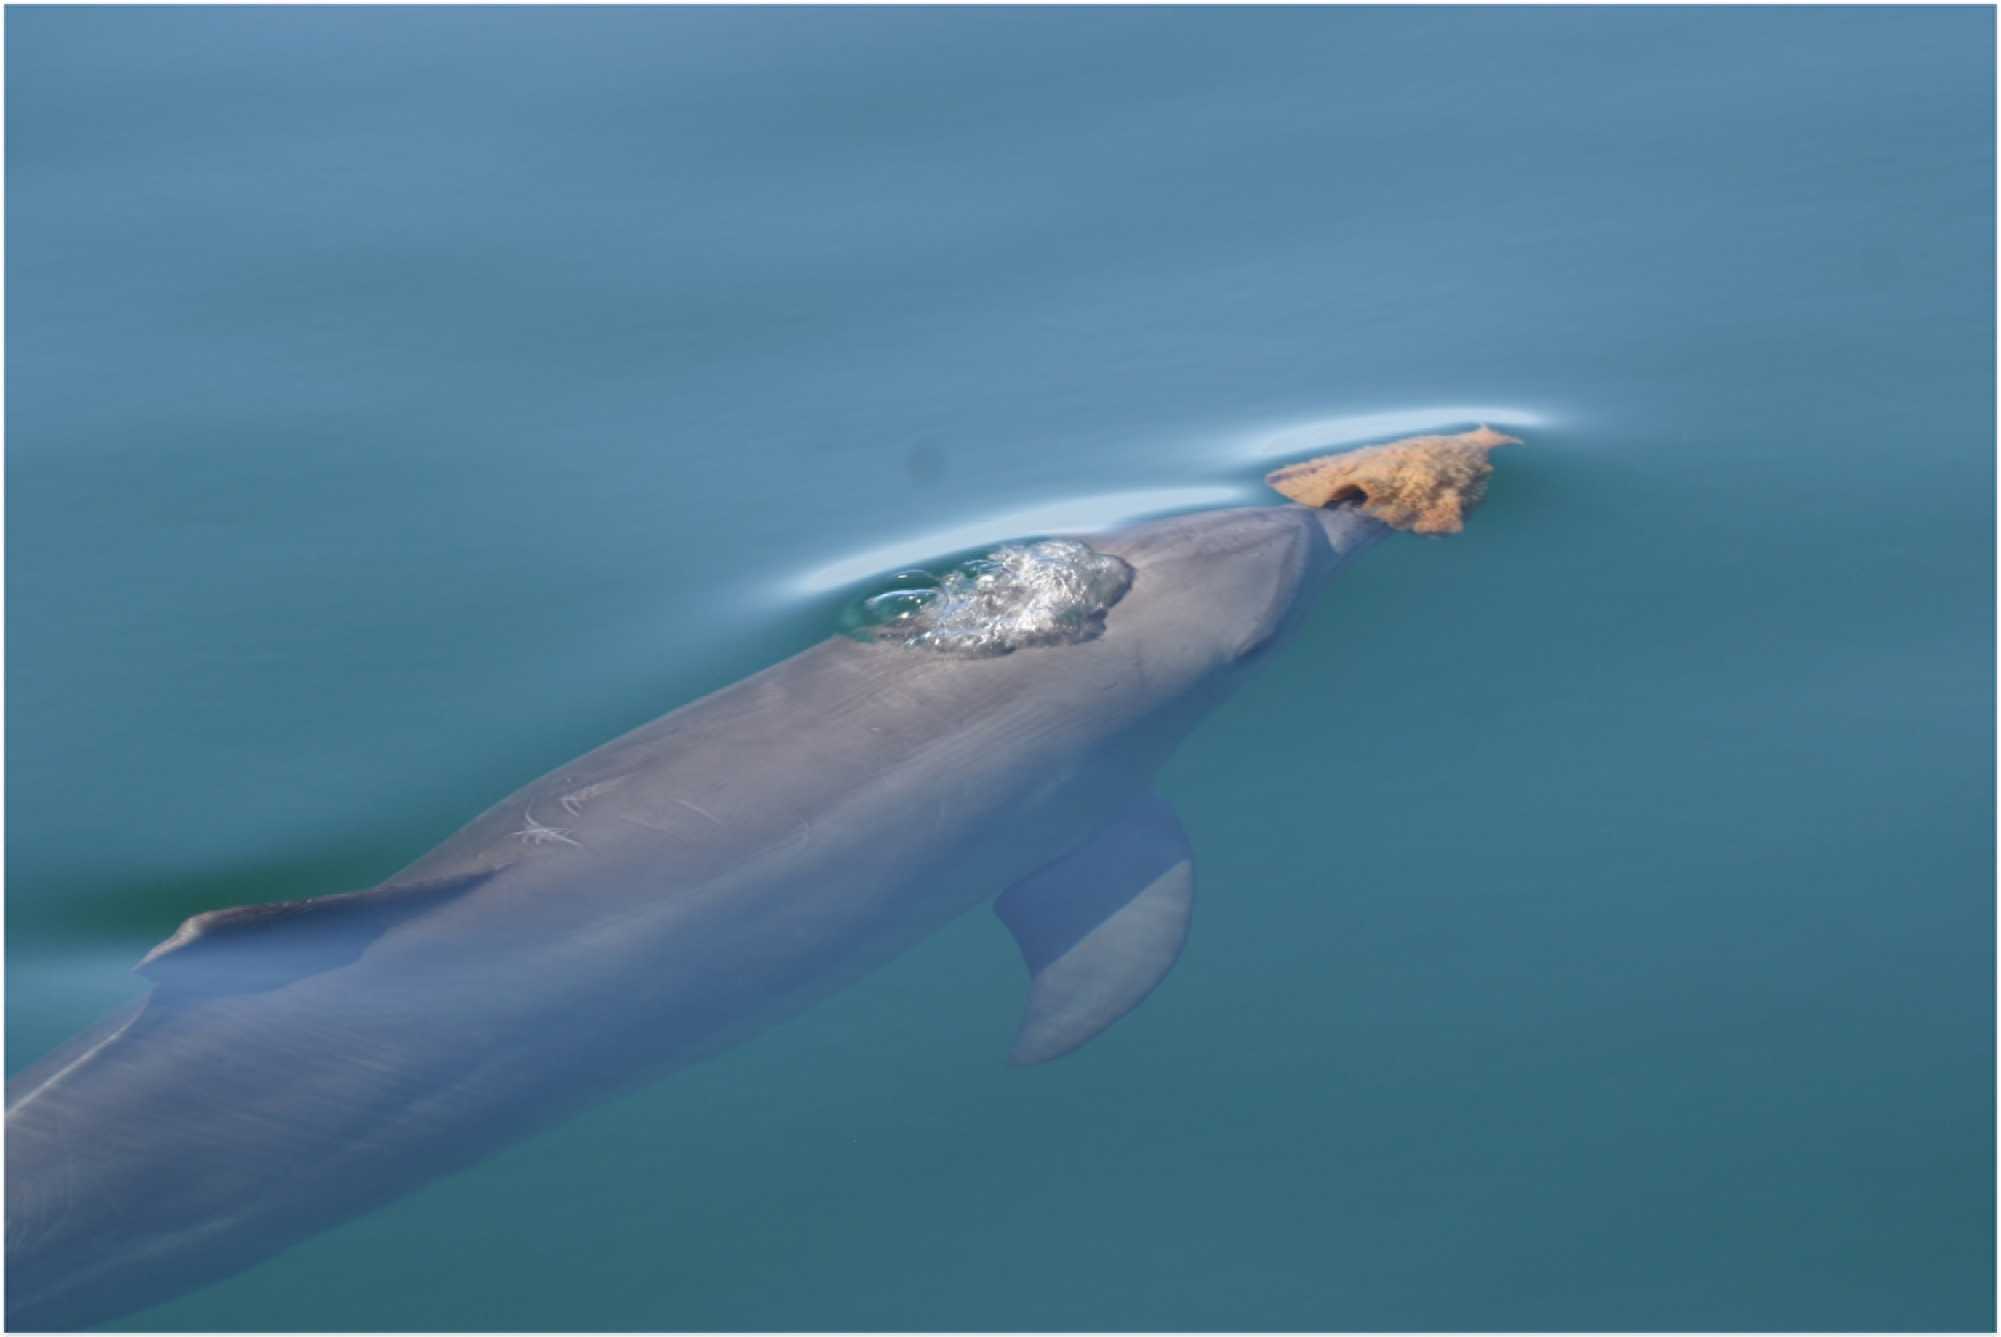 A bottlenose dolphin carries a sponge, which it uses as a tool to dig up prey from the seafloor.<div class='credit'><strong>Credit:</strong> A bottlenose dolphin carries a sponge, which it uses as a tool to dig up prey from the seafloor.</div>